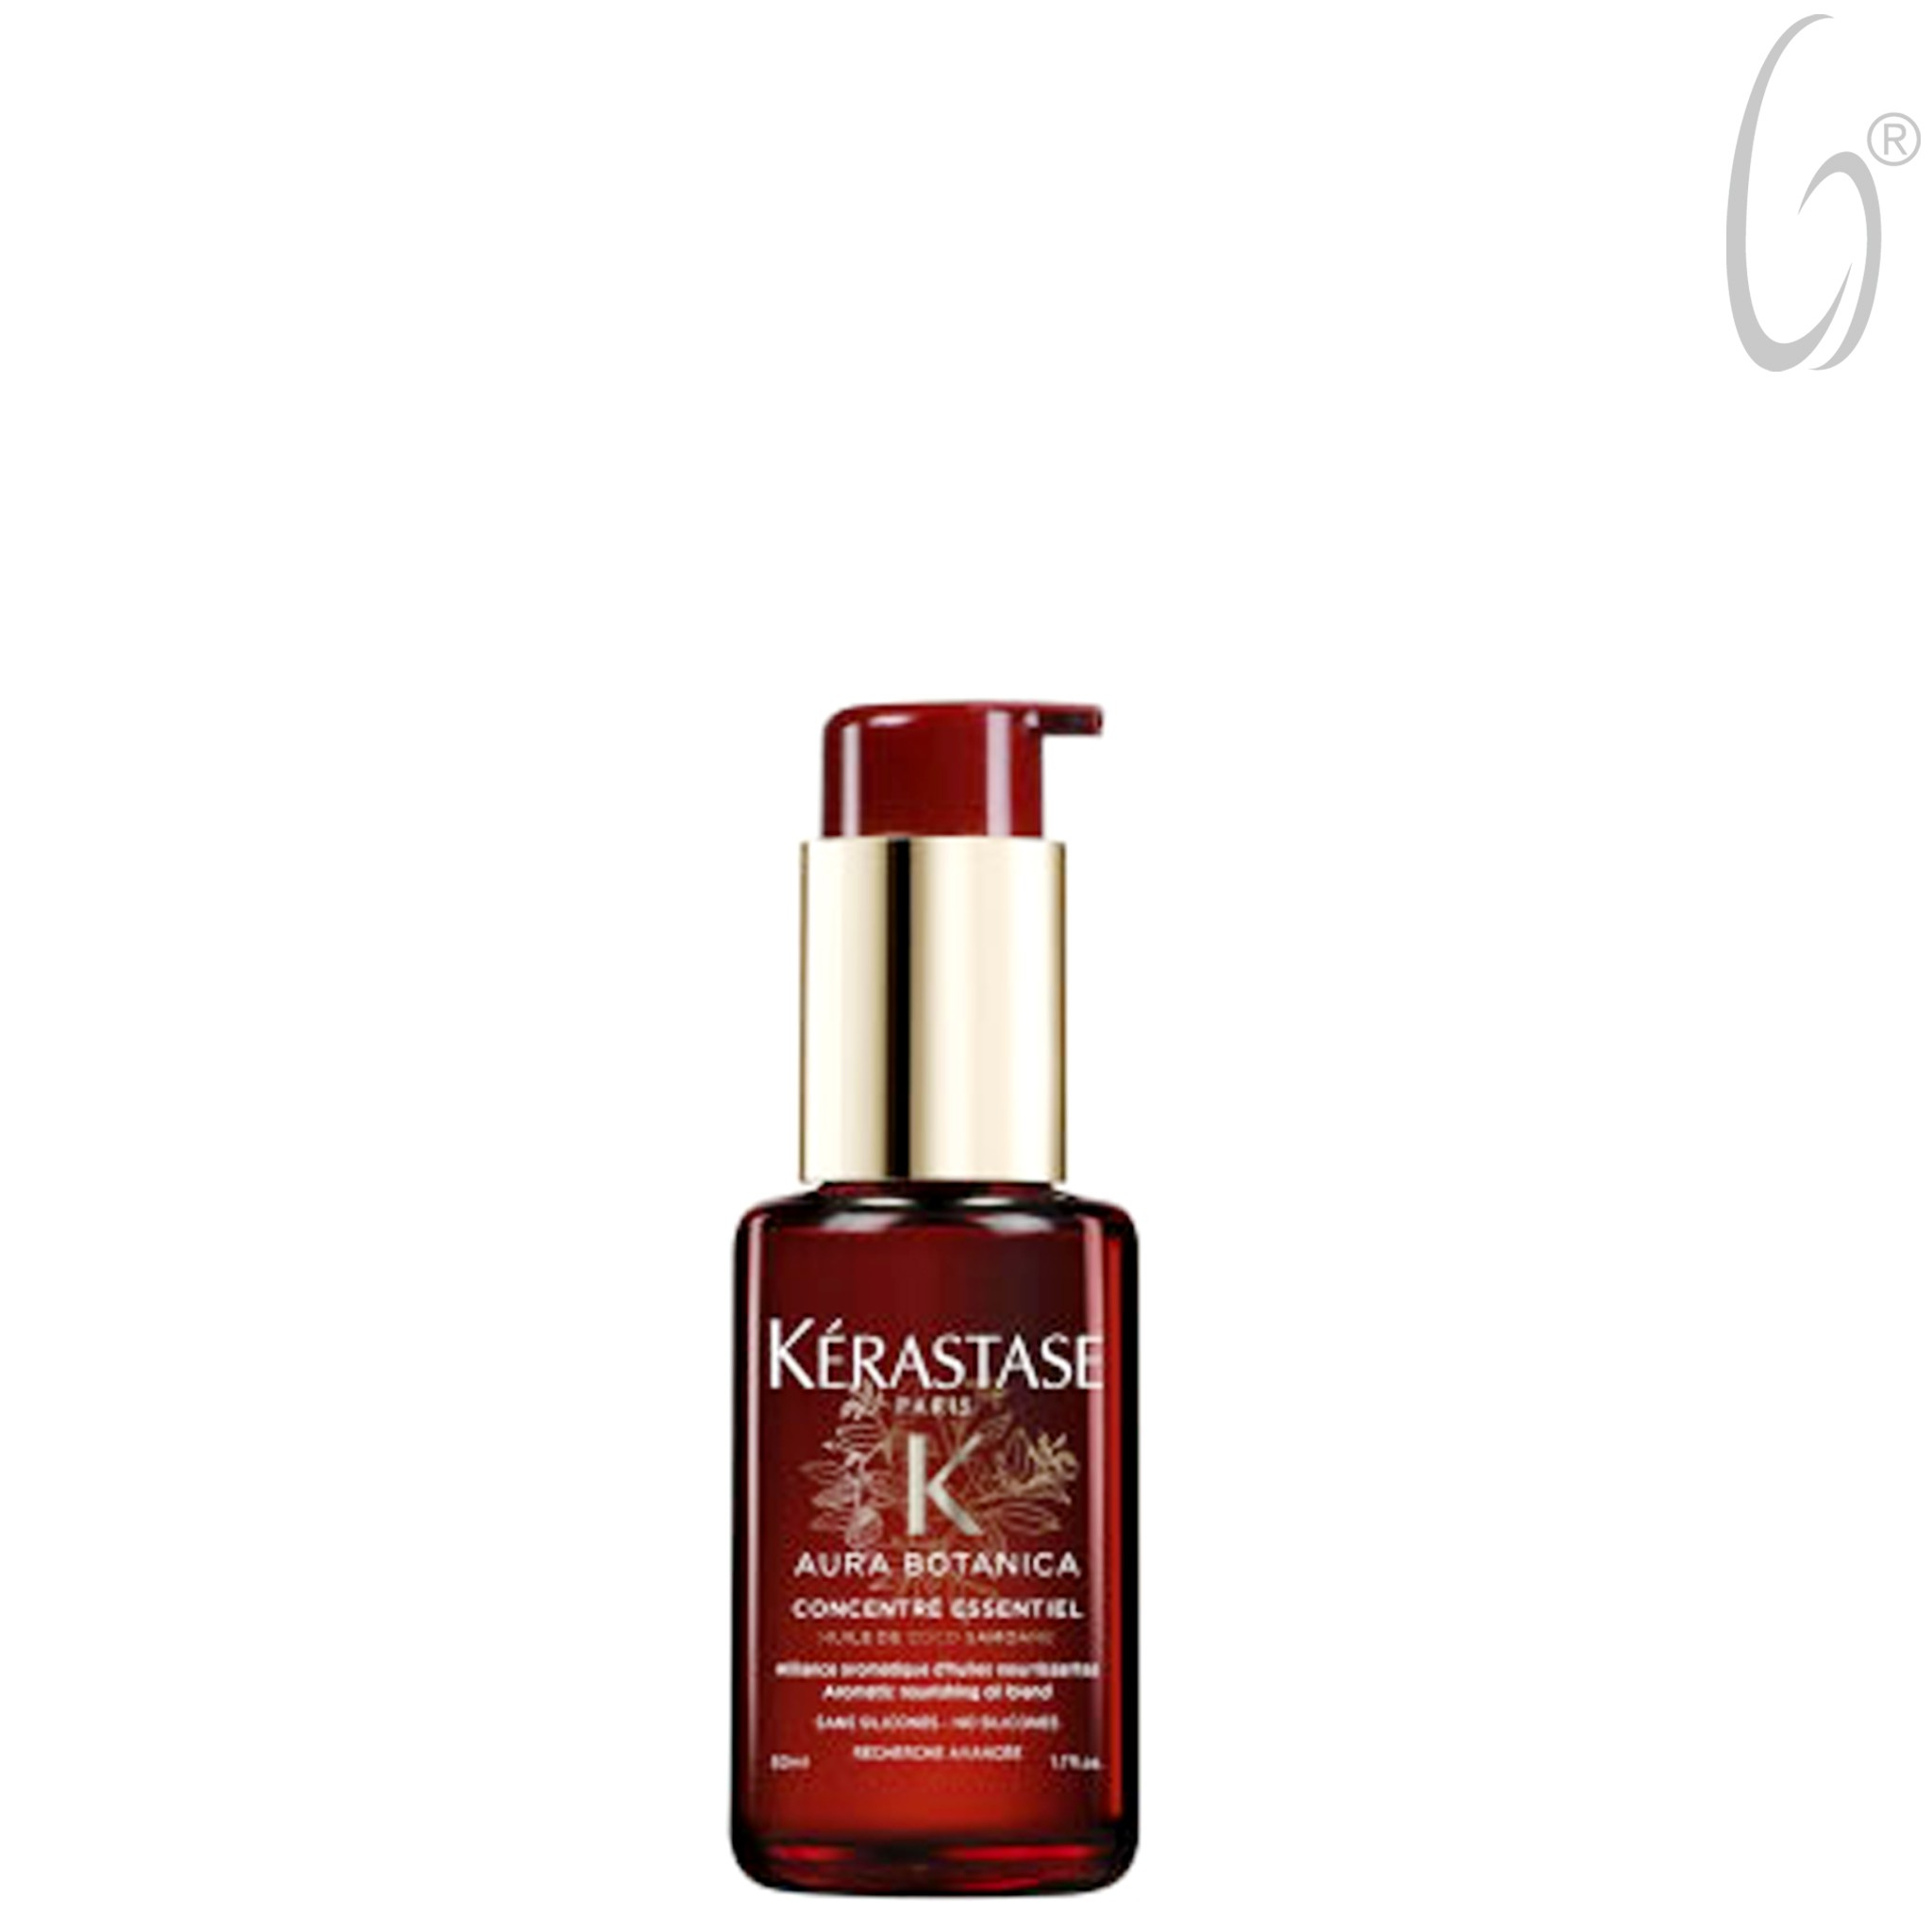 kerastase aura botanica concentre essentiel 50 ml barbiera 39 s barbershop. Black Bedroom Furniture Sets. Home Design Ideas